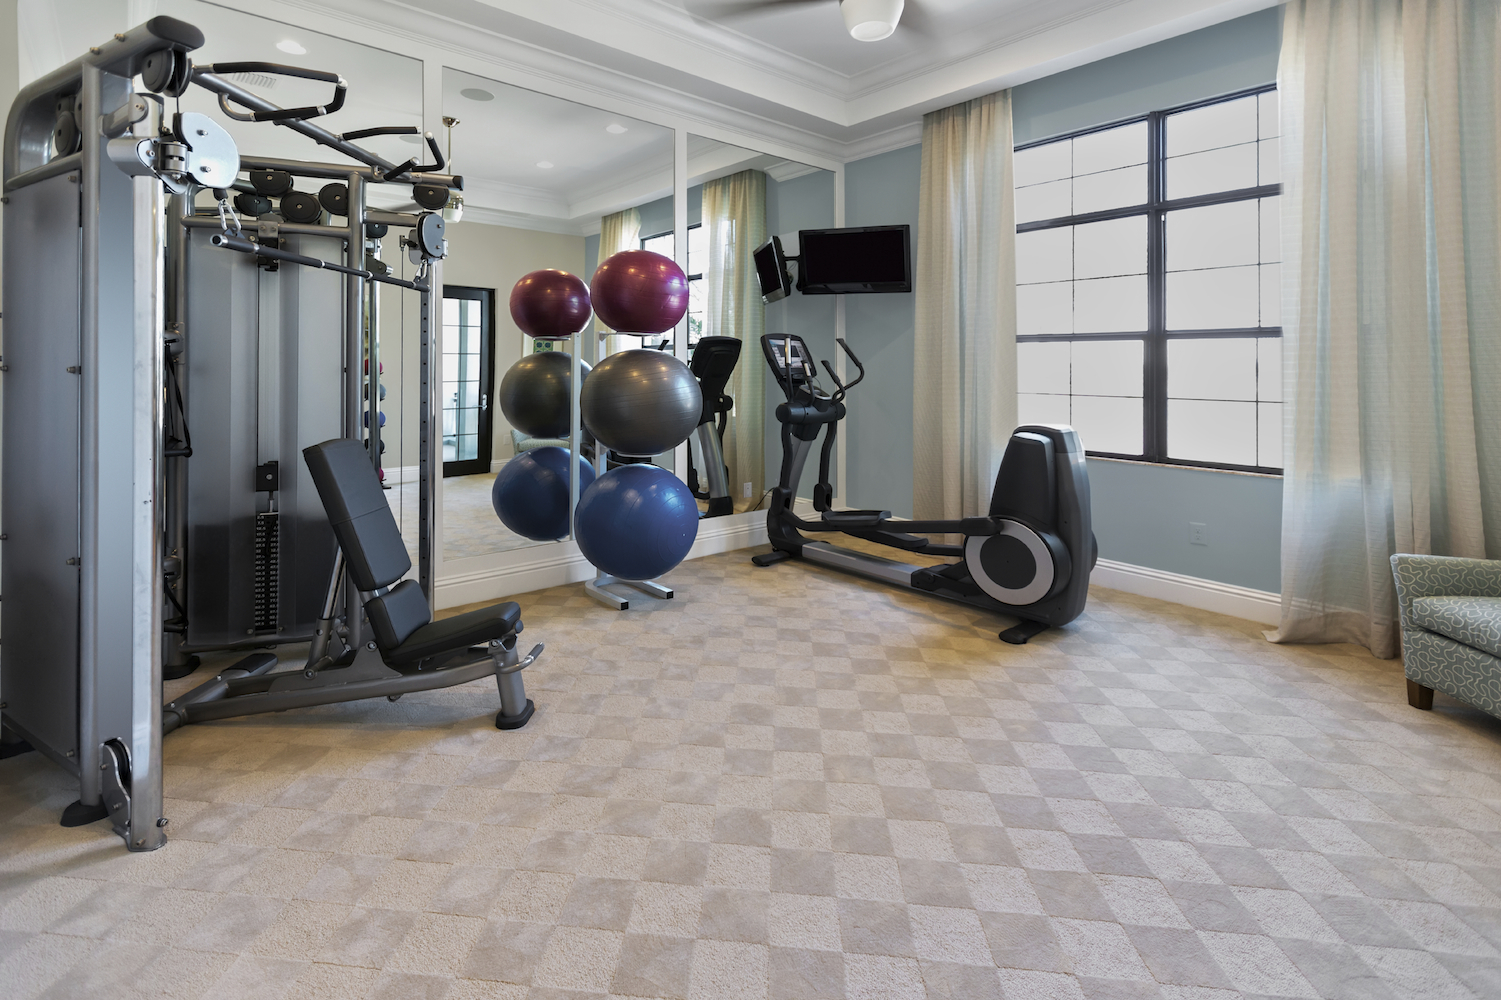 5 ways to build the ultimate home gym long island pulse magazine. Black Bedroom Furniture Sets. Home Design Ideas